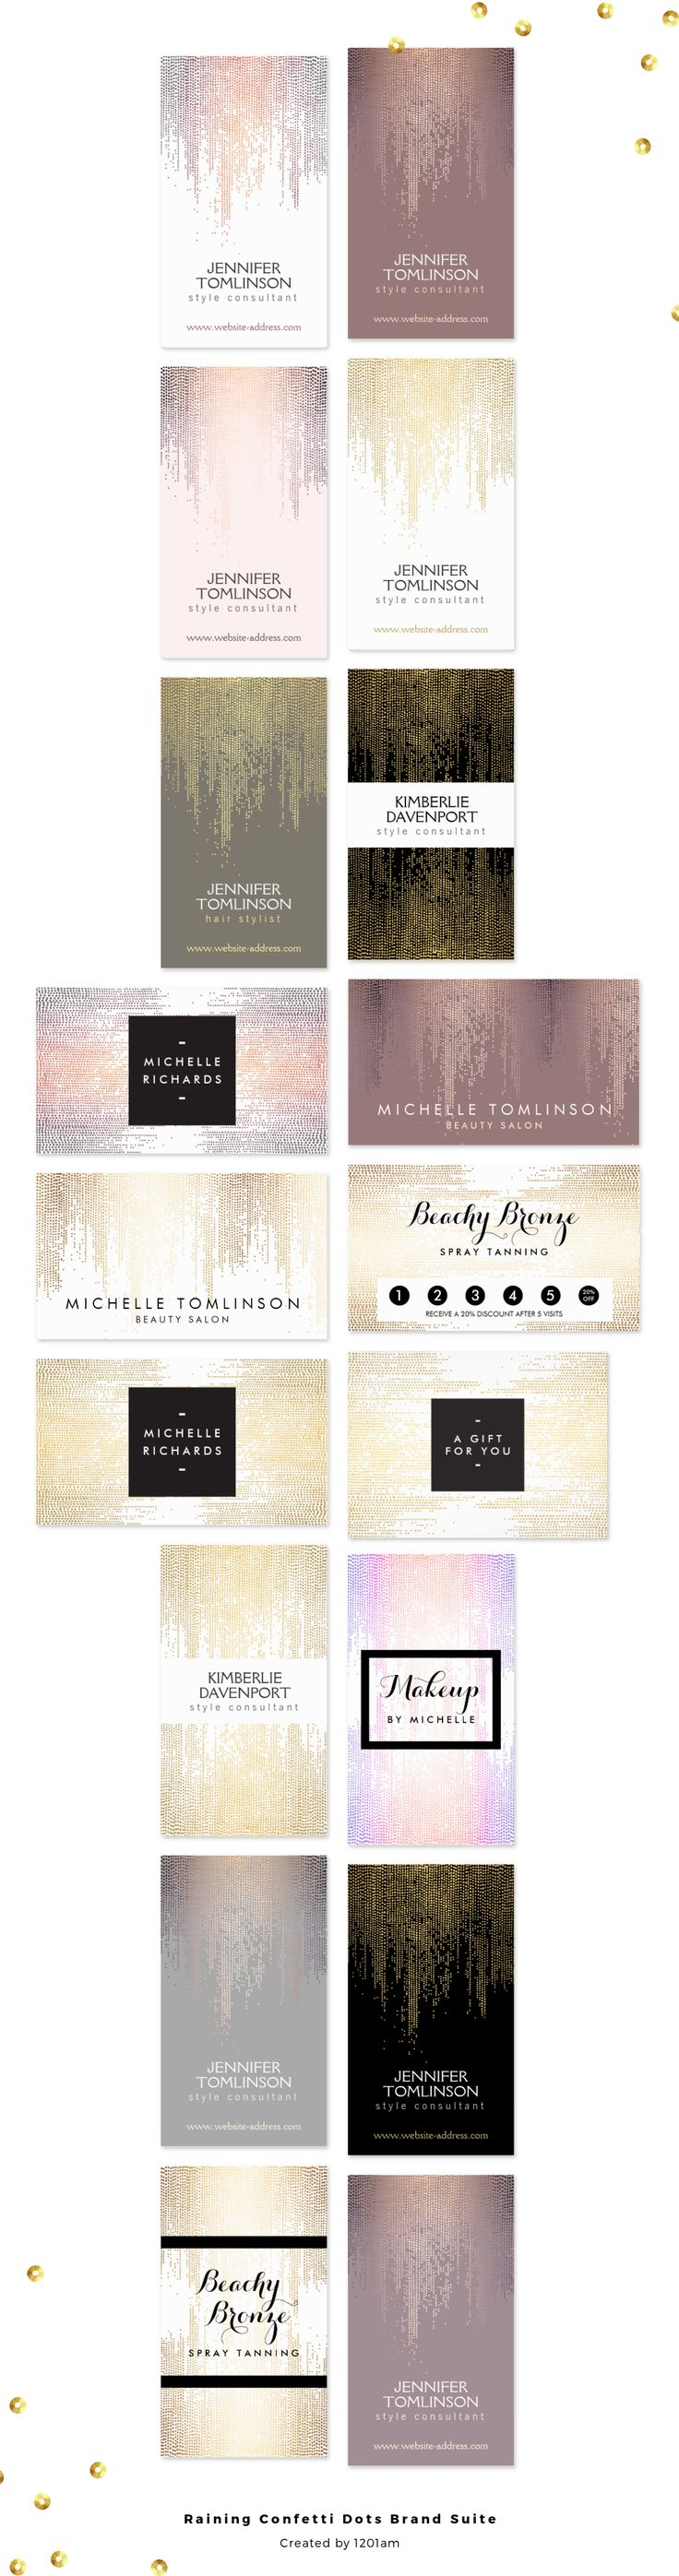 best 25 makeup business cards ideas on pinterest